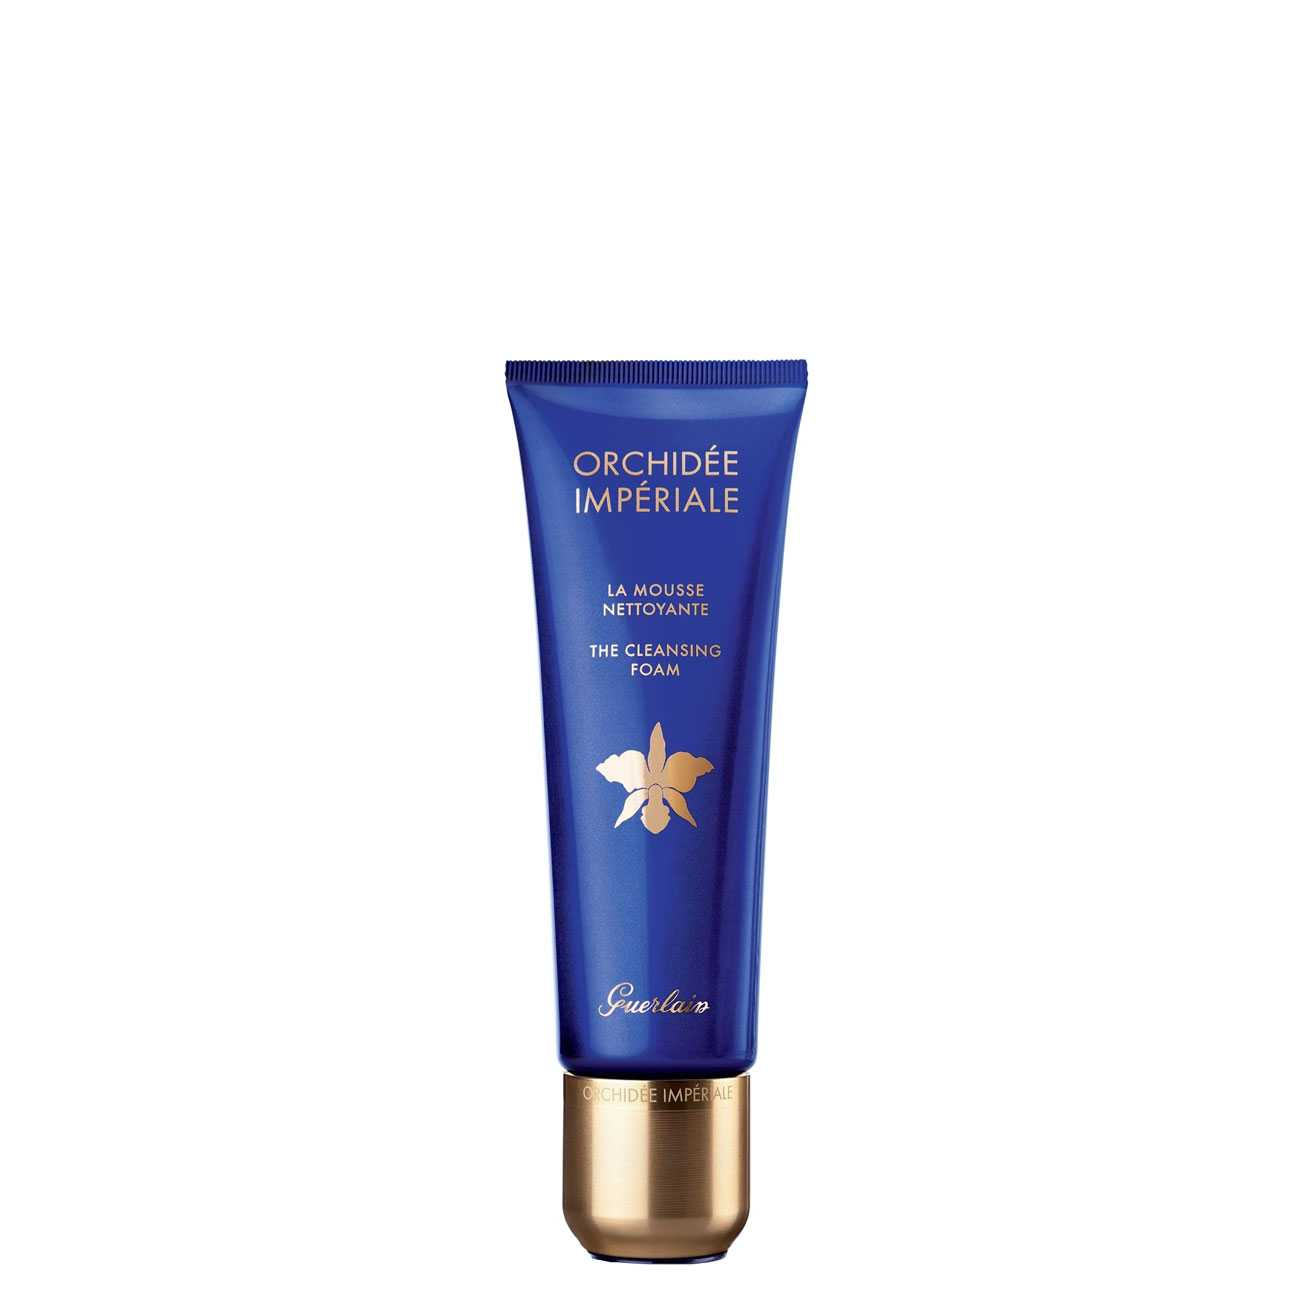 ORCHIDEE IMPERIALE FACE FOAM 125 G